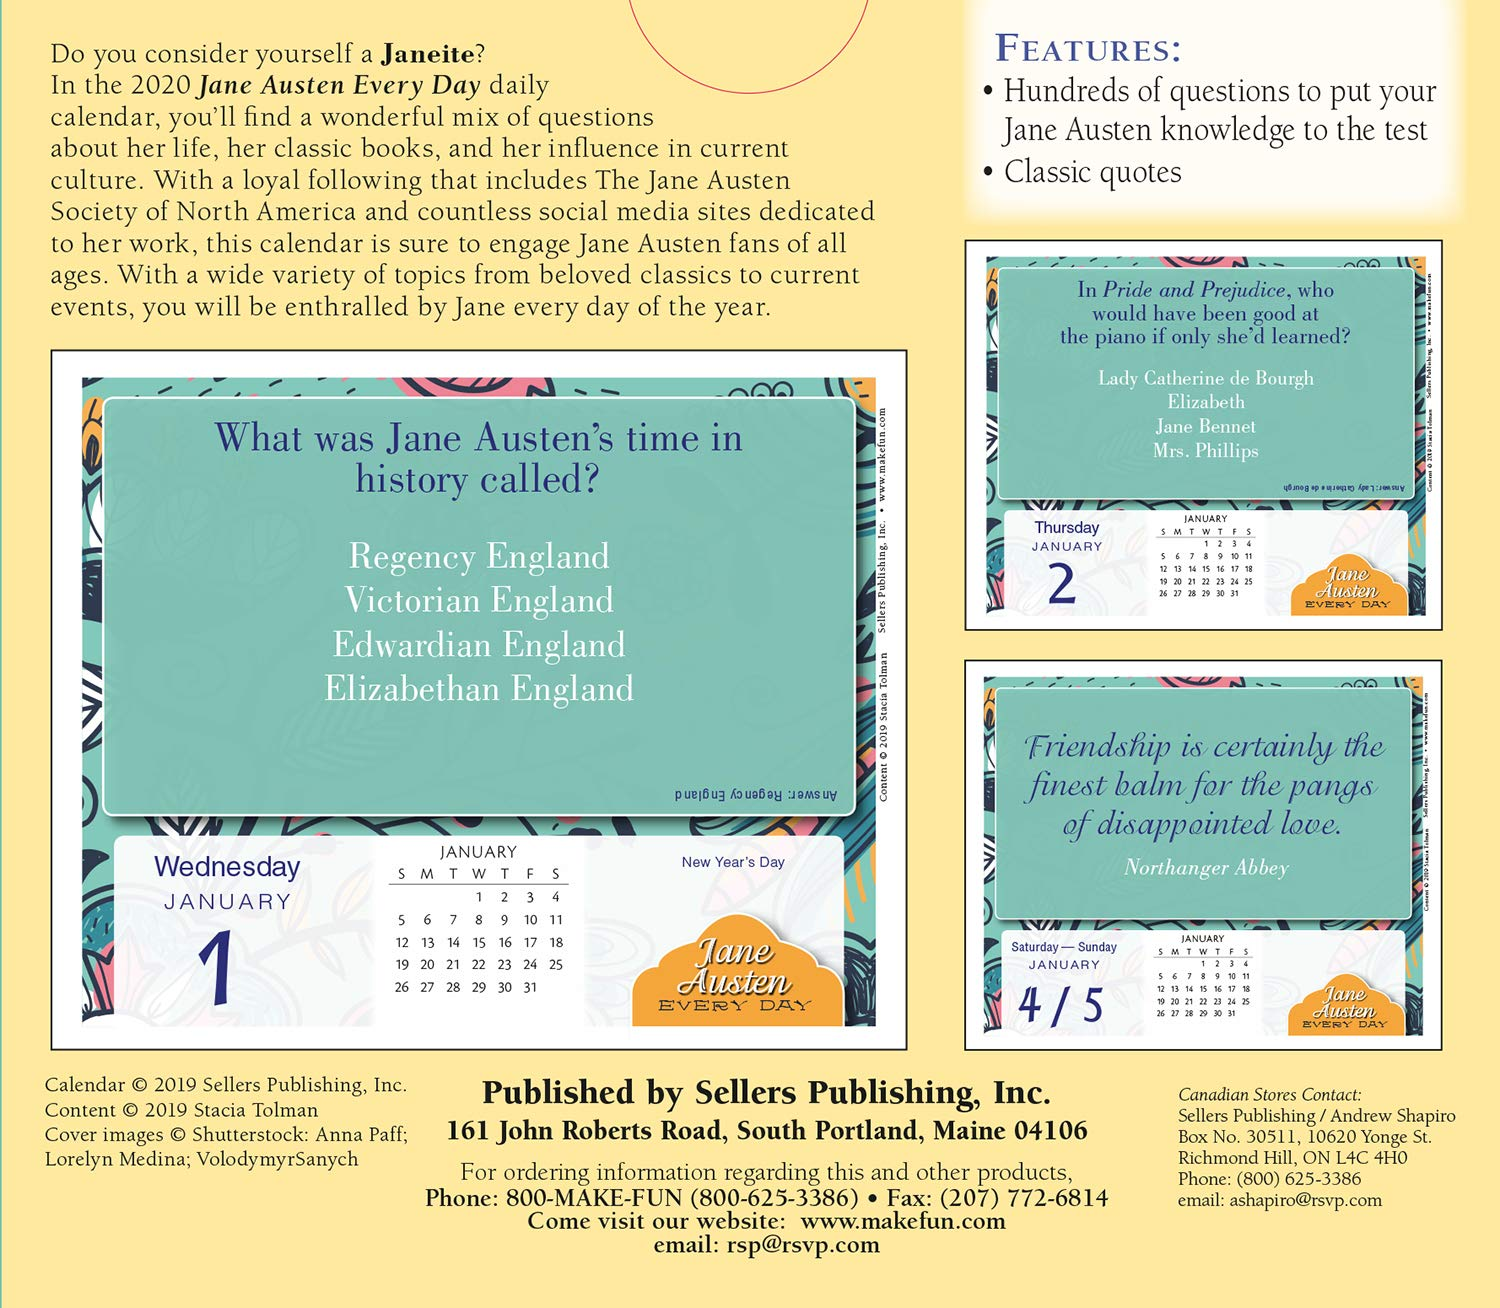 2020 Jane Austen Every Day a Year of Jane Trivia and Classic Quotes Boxed Daily Calendar: by Sellers Publishing